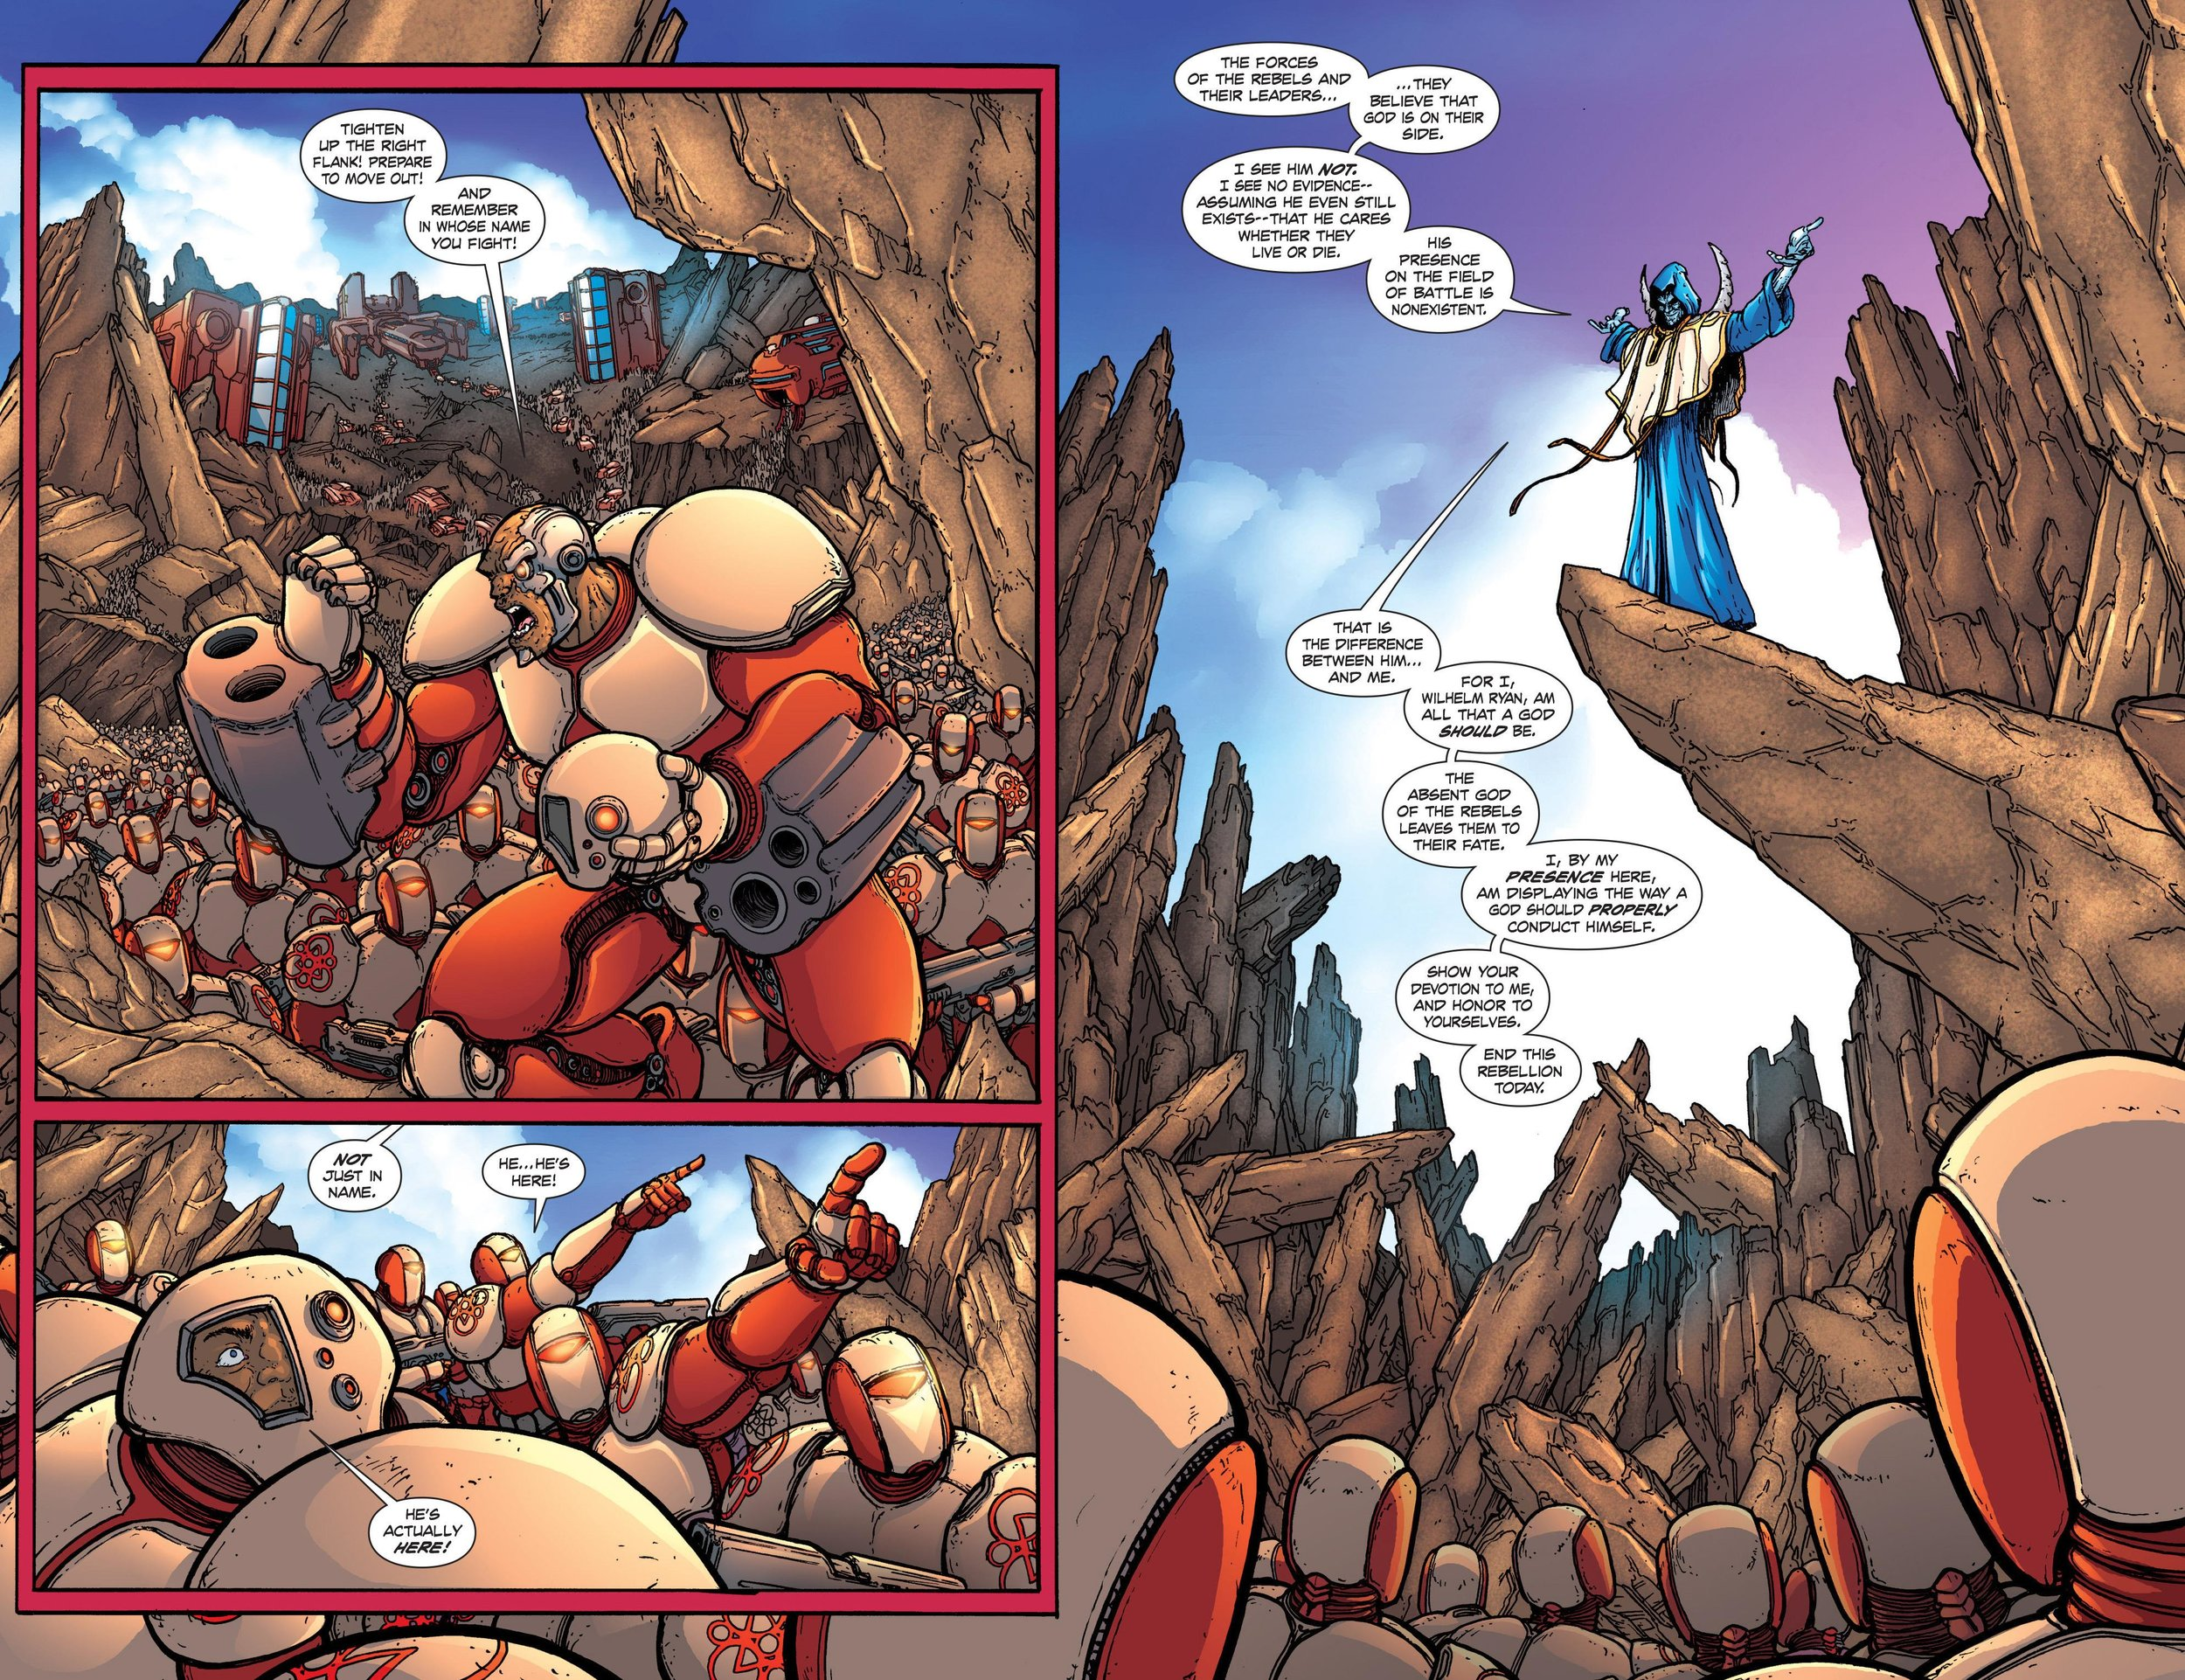 A double page spread; Wilhelm Ryan is actually here on the planet!